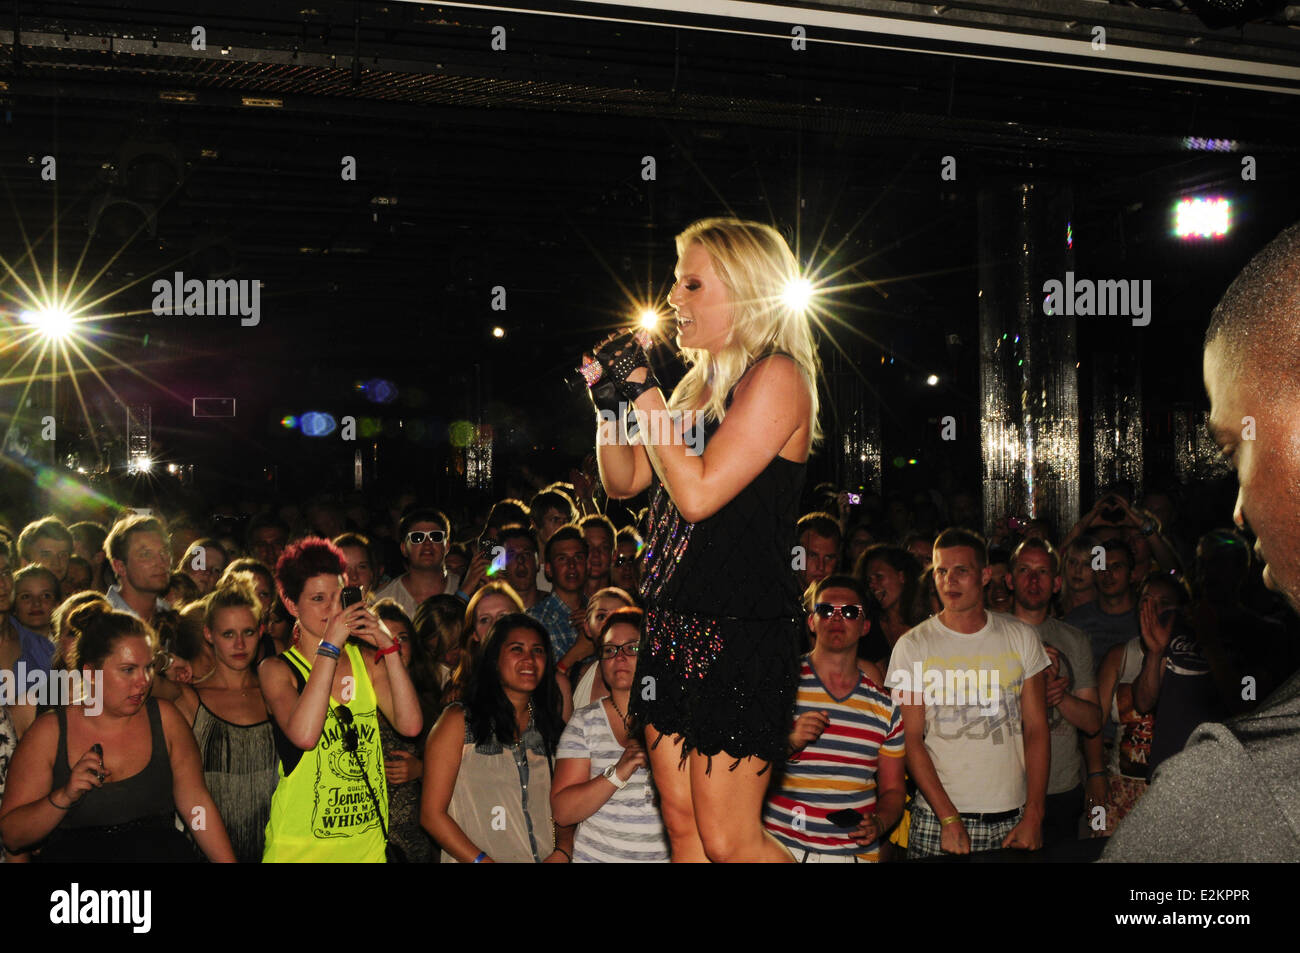 cascada performing live at riu palace mallorca where playa de stock photo royalty free image. Black Bedroom Furniture Sets. Home Design Ideas